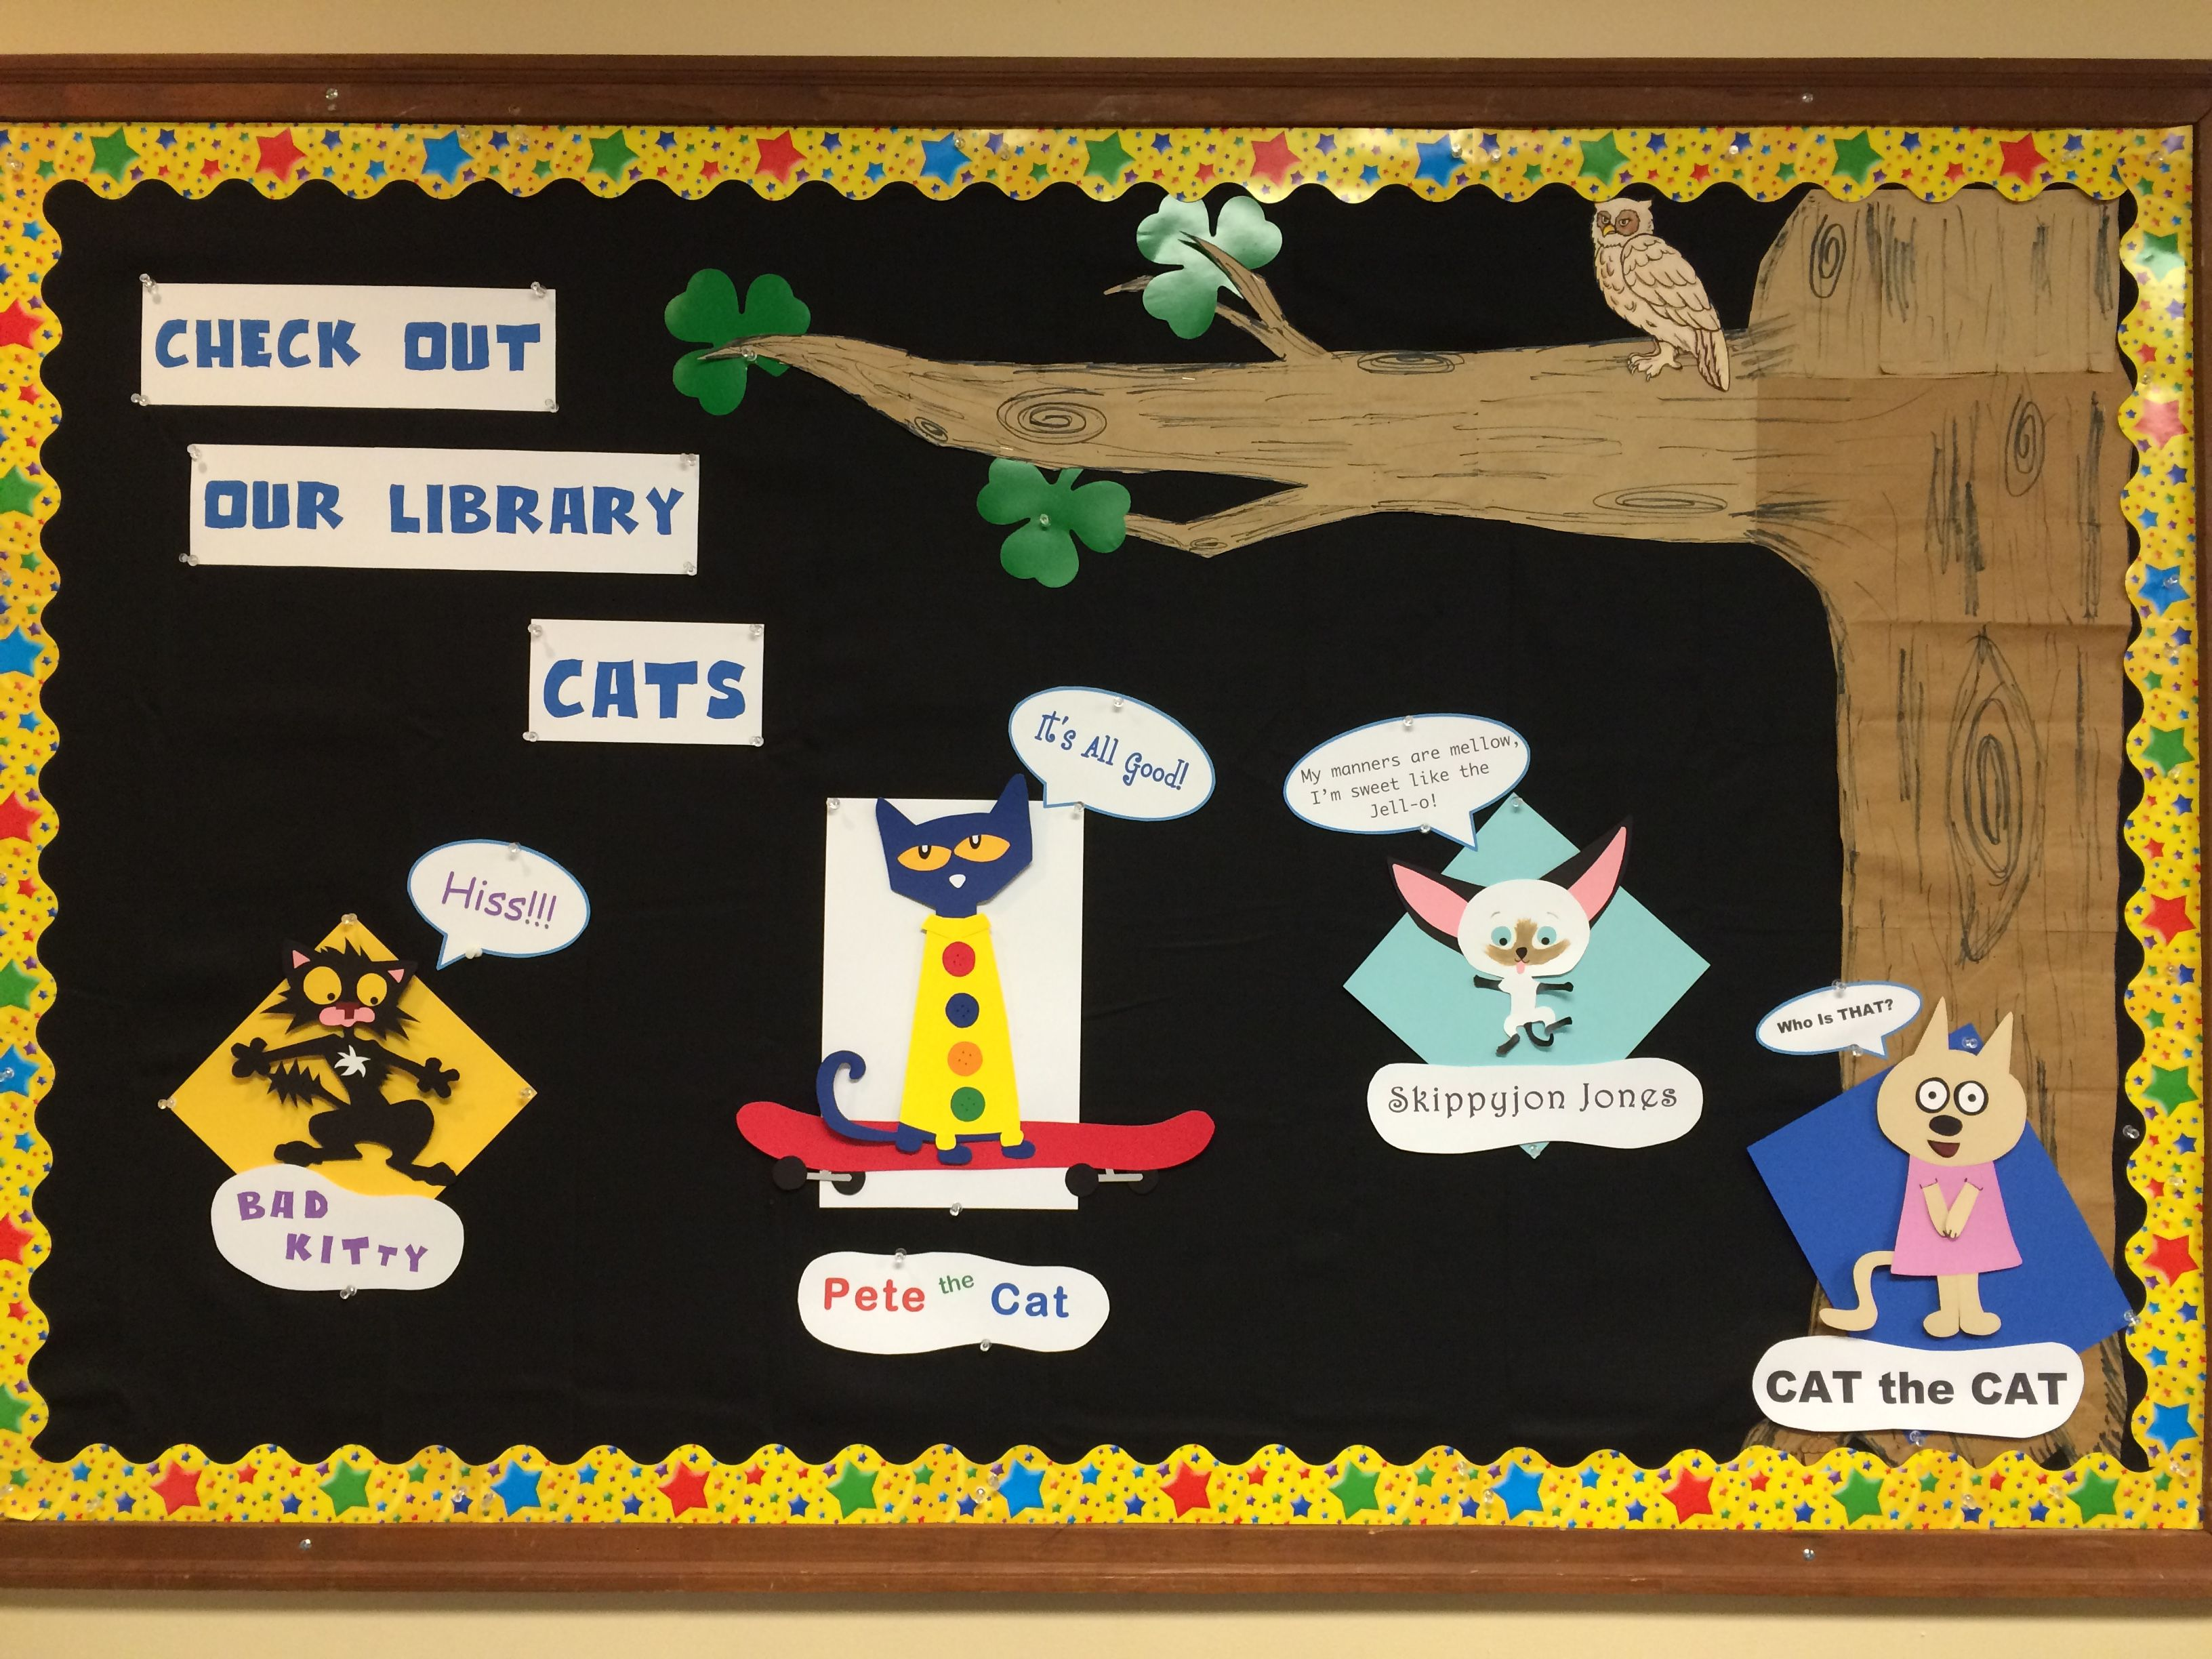 Library cats bad cats pete the cat kitty